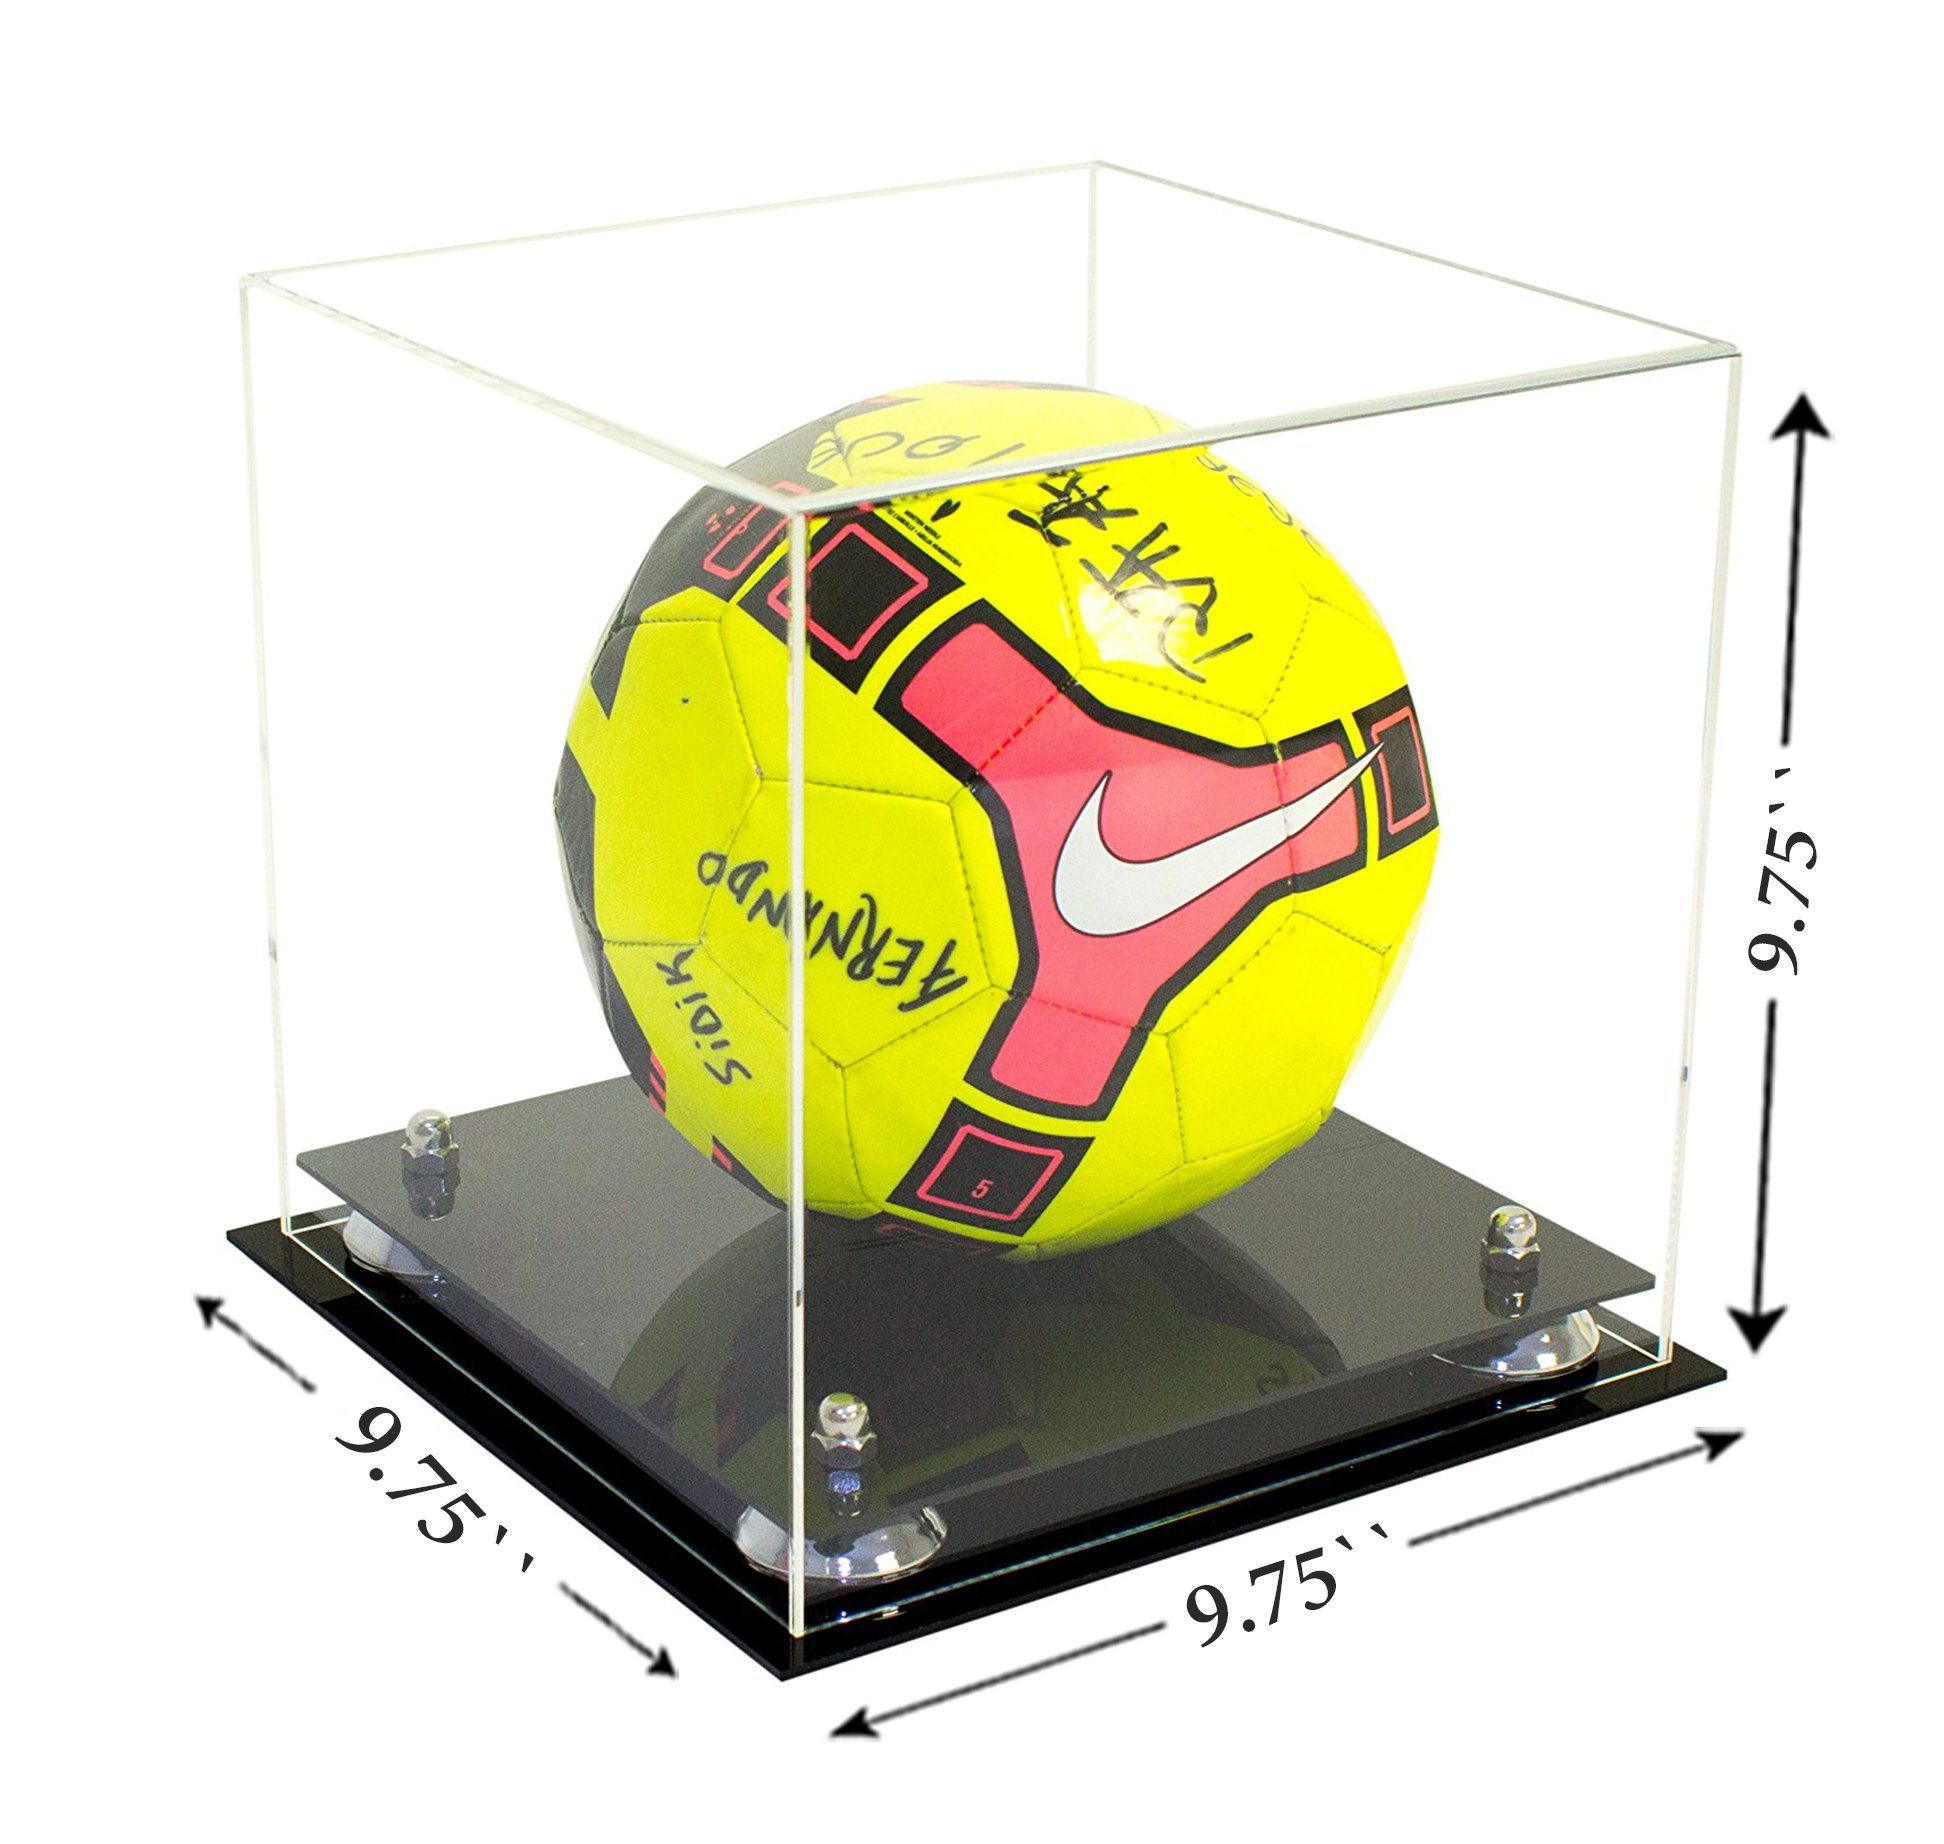 High Quality Clear Acrylic Display Box Memorabilia Cube Comes Fully Assembled Jet Black Acrylic Two Tiered Display Case Clear Acrylic Acrylic Display Box